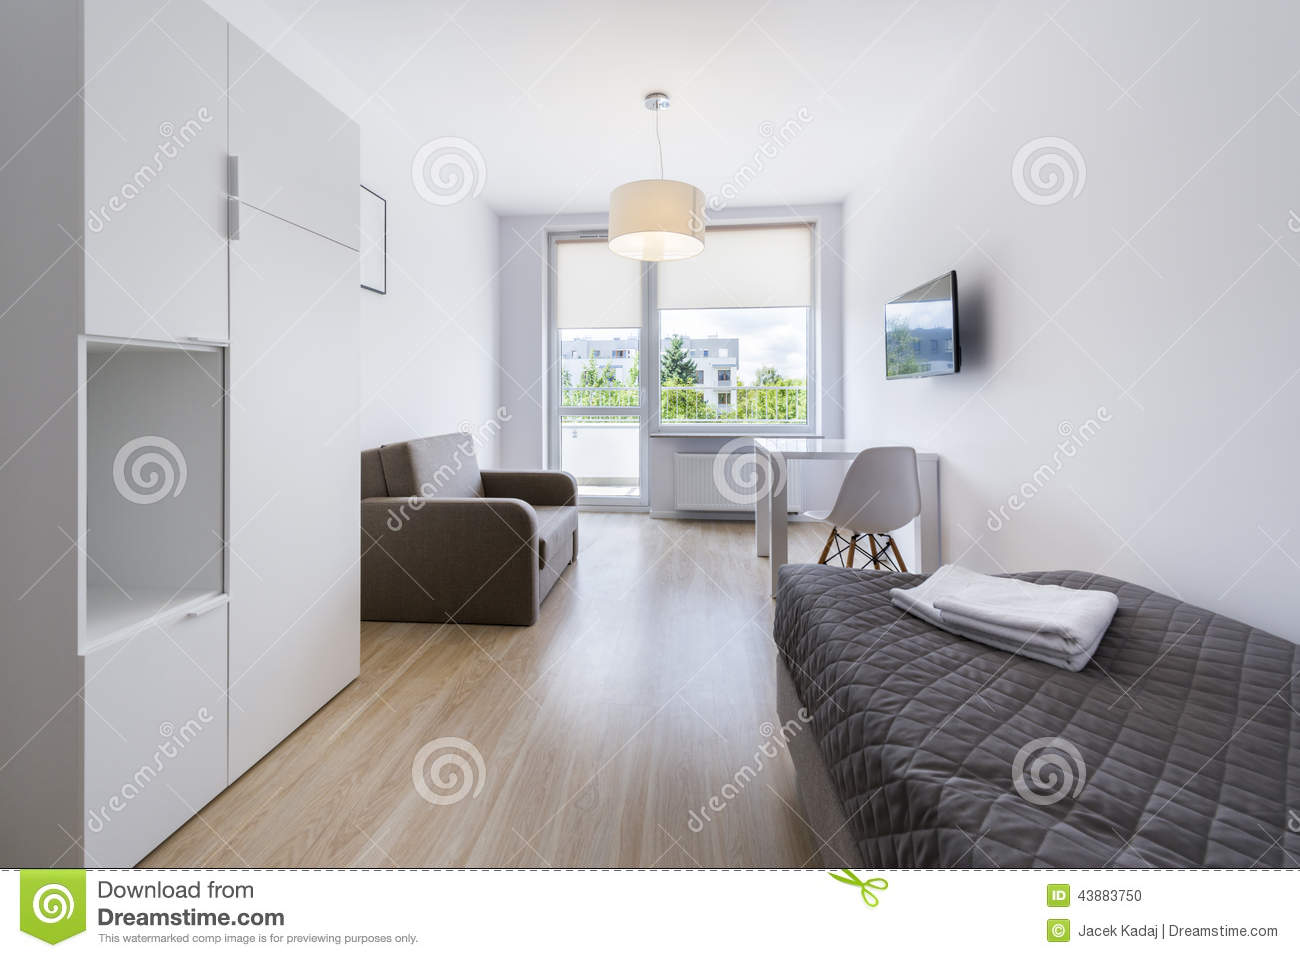 Economic modern sleeping room interior design stock photo for Sleeping room interior design